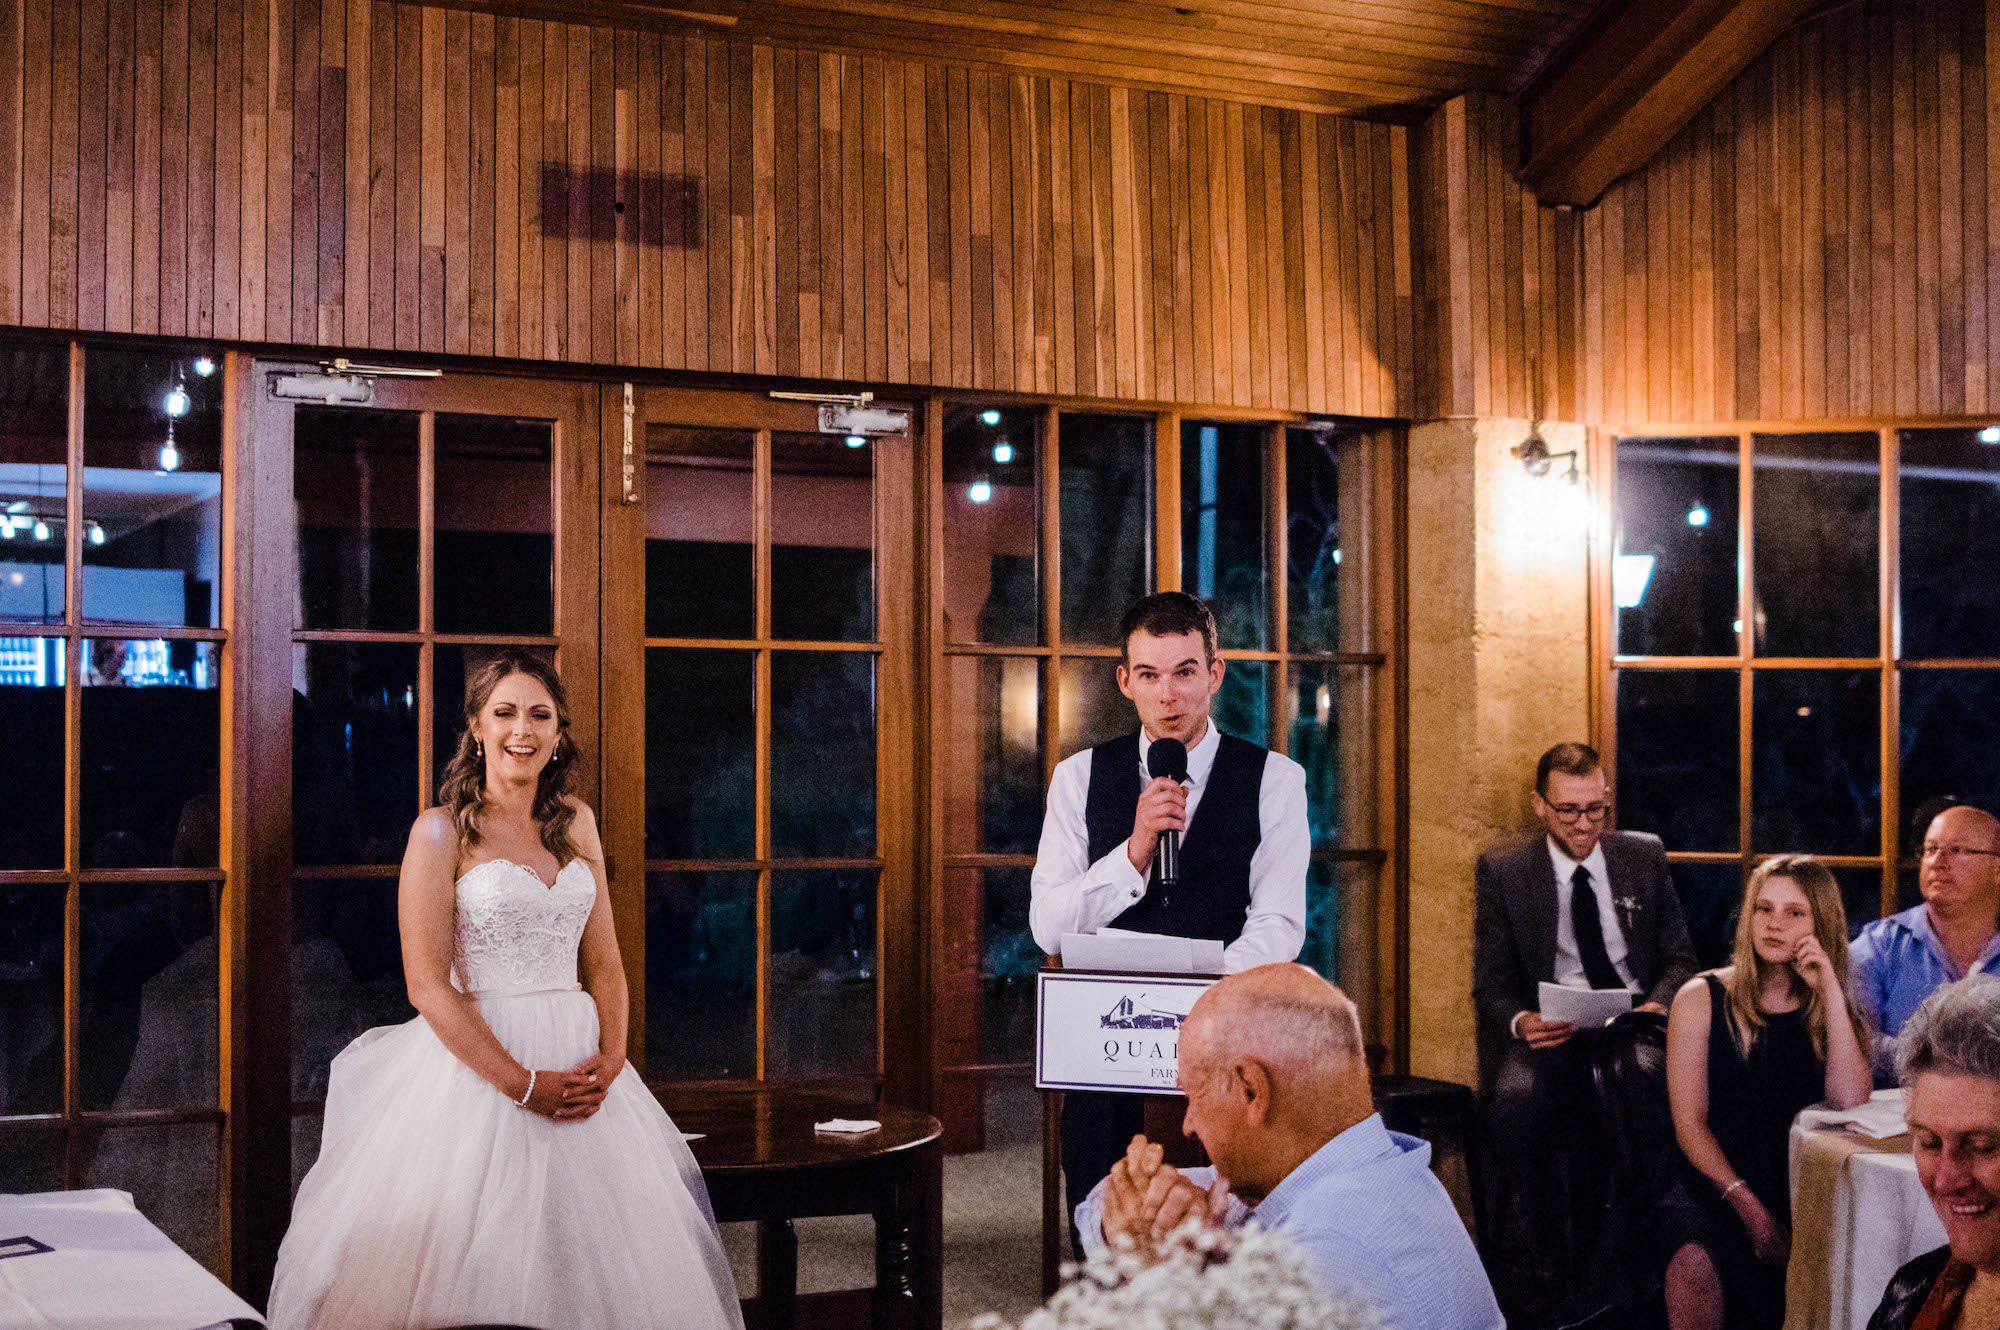 The bride laughs during the grooms speech at their wedding reception.